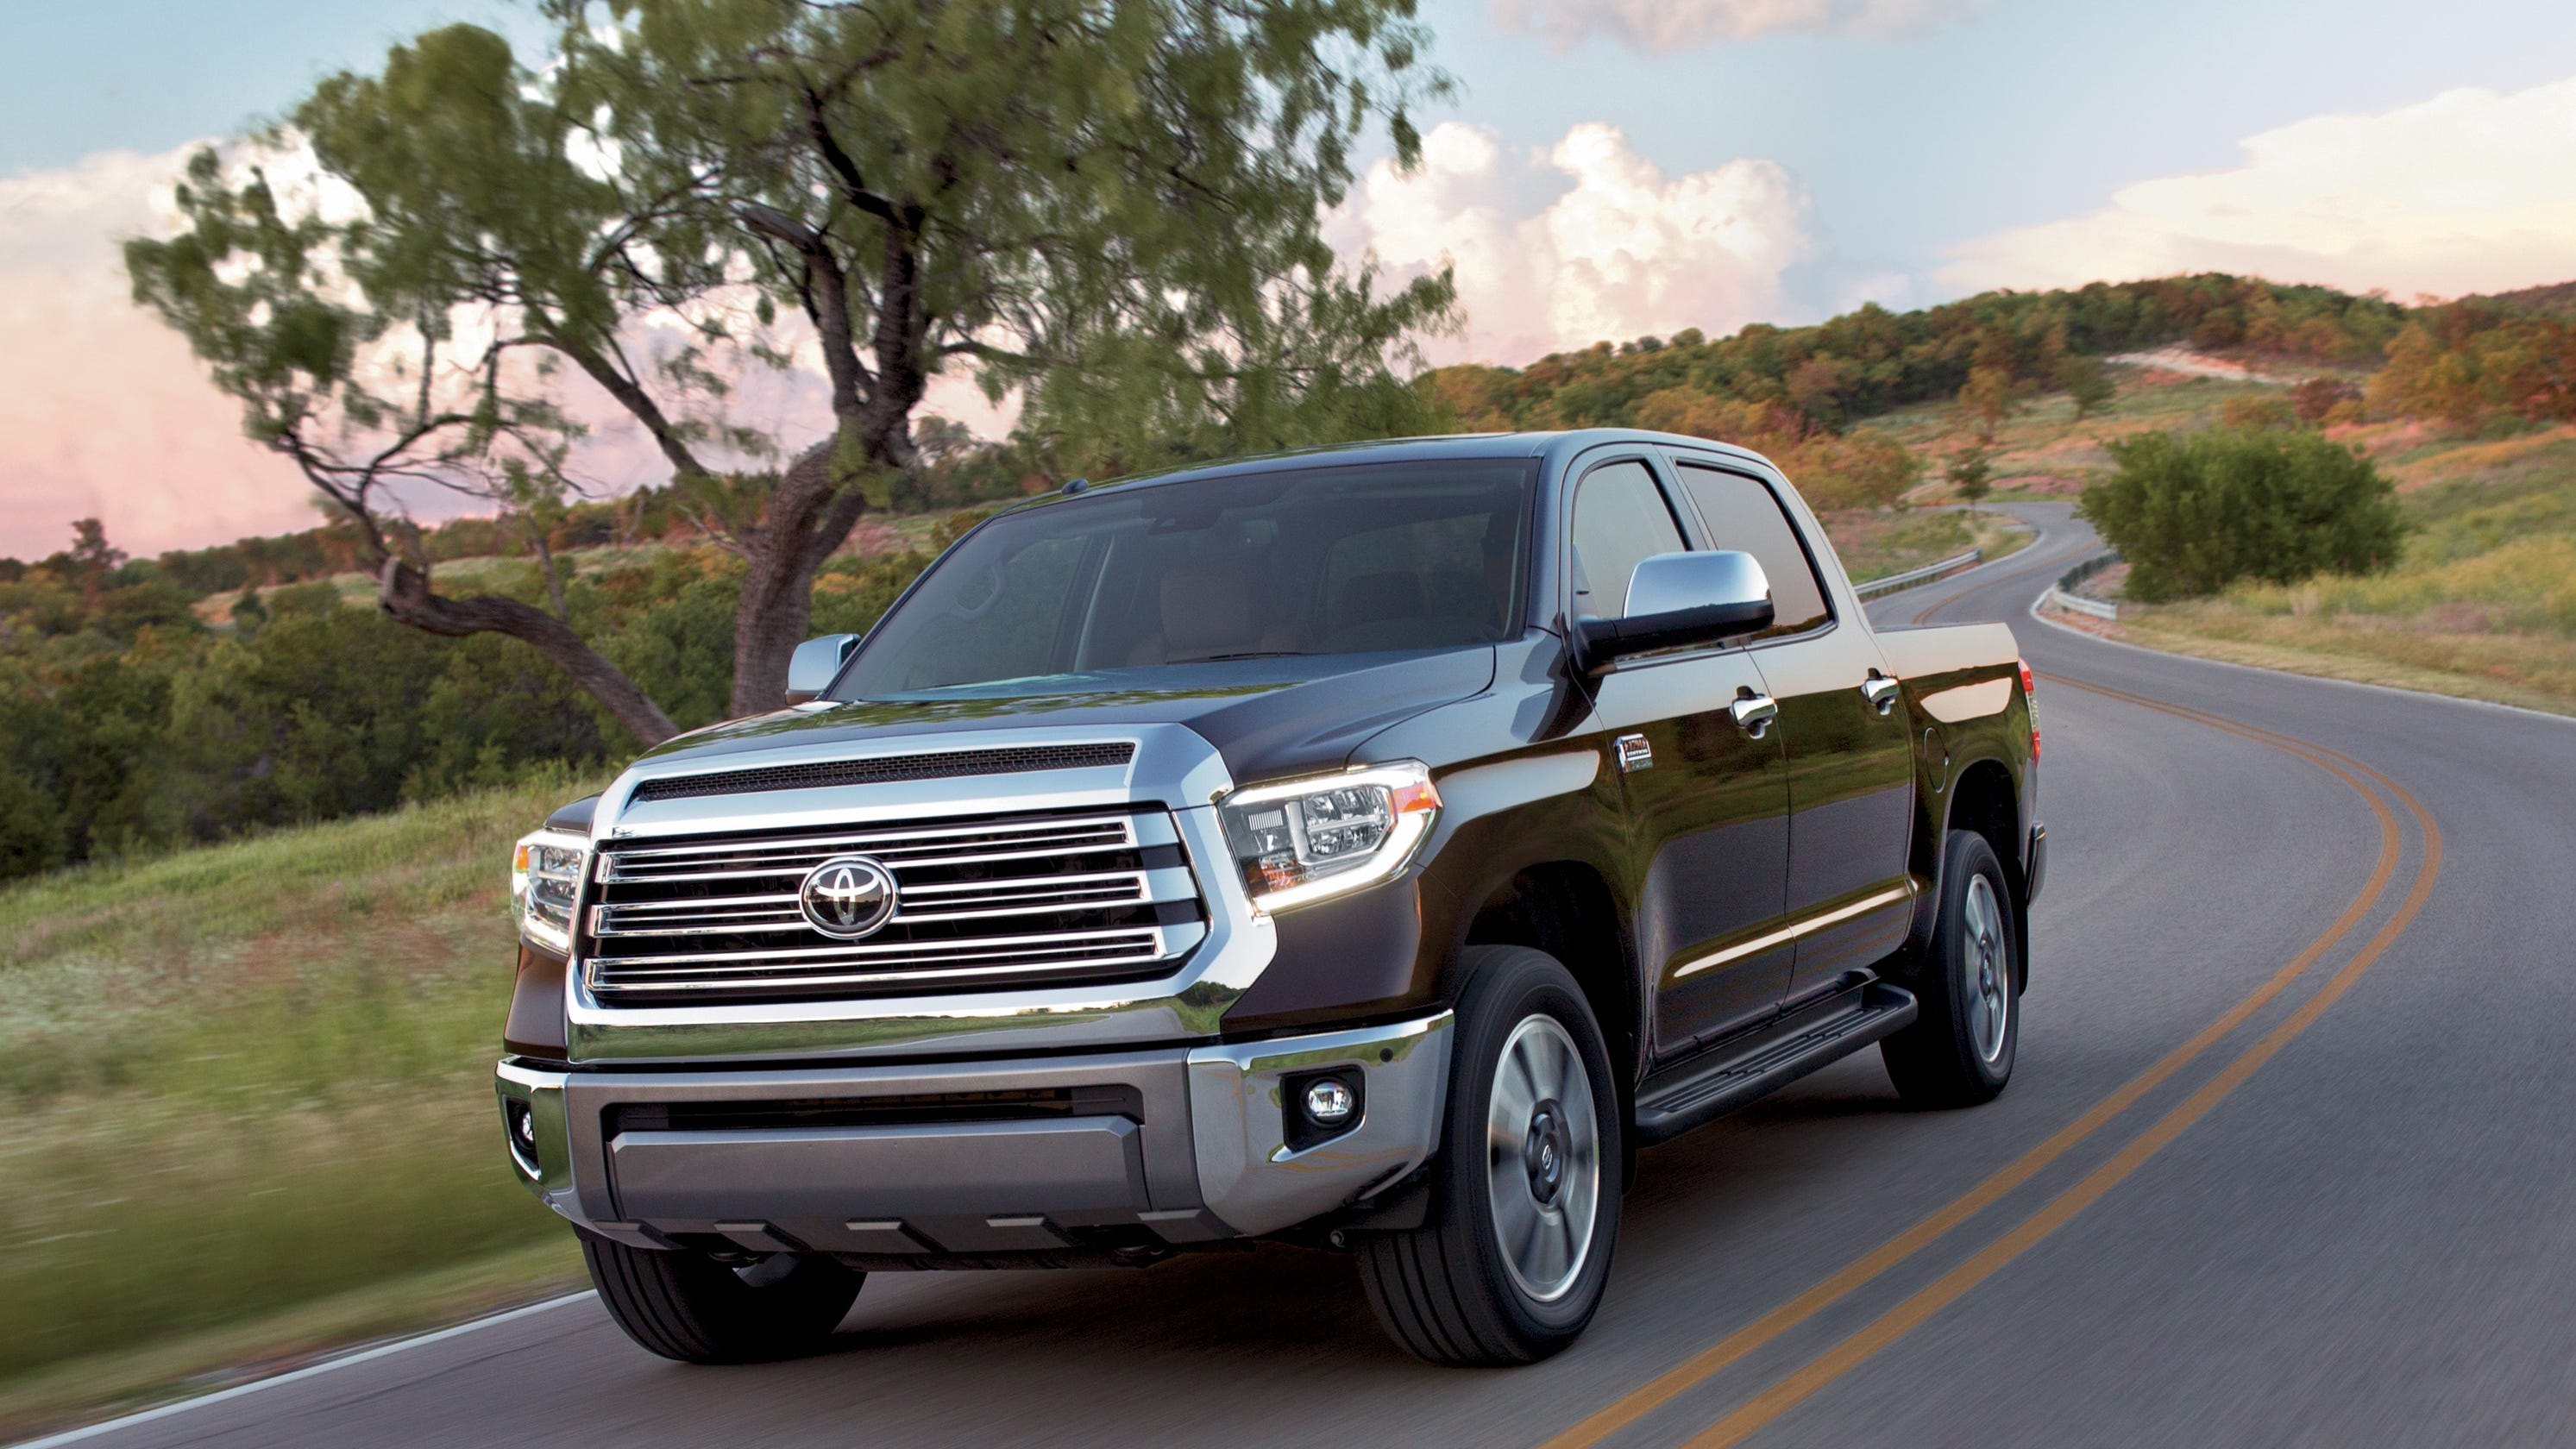 Iihs Report Pickup Truck Passengers At Higher Risk Of Injury Or Death